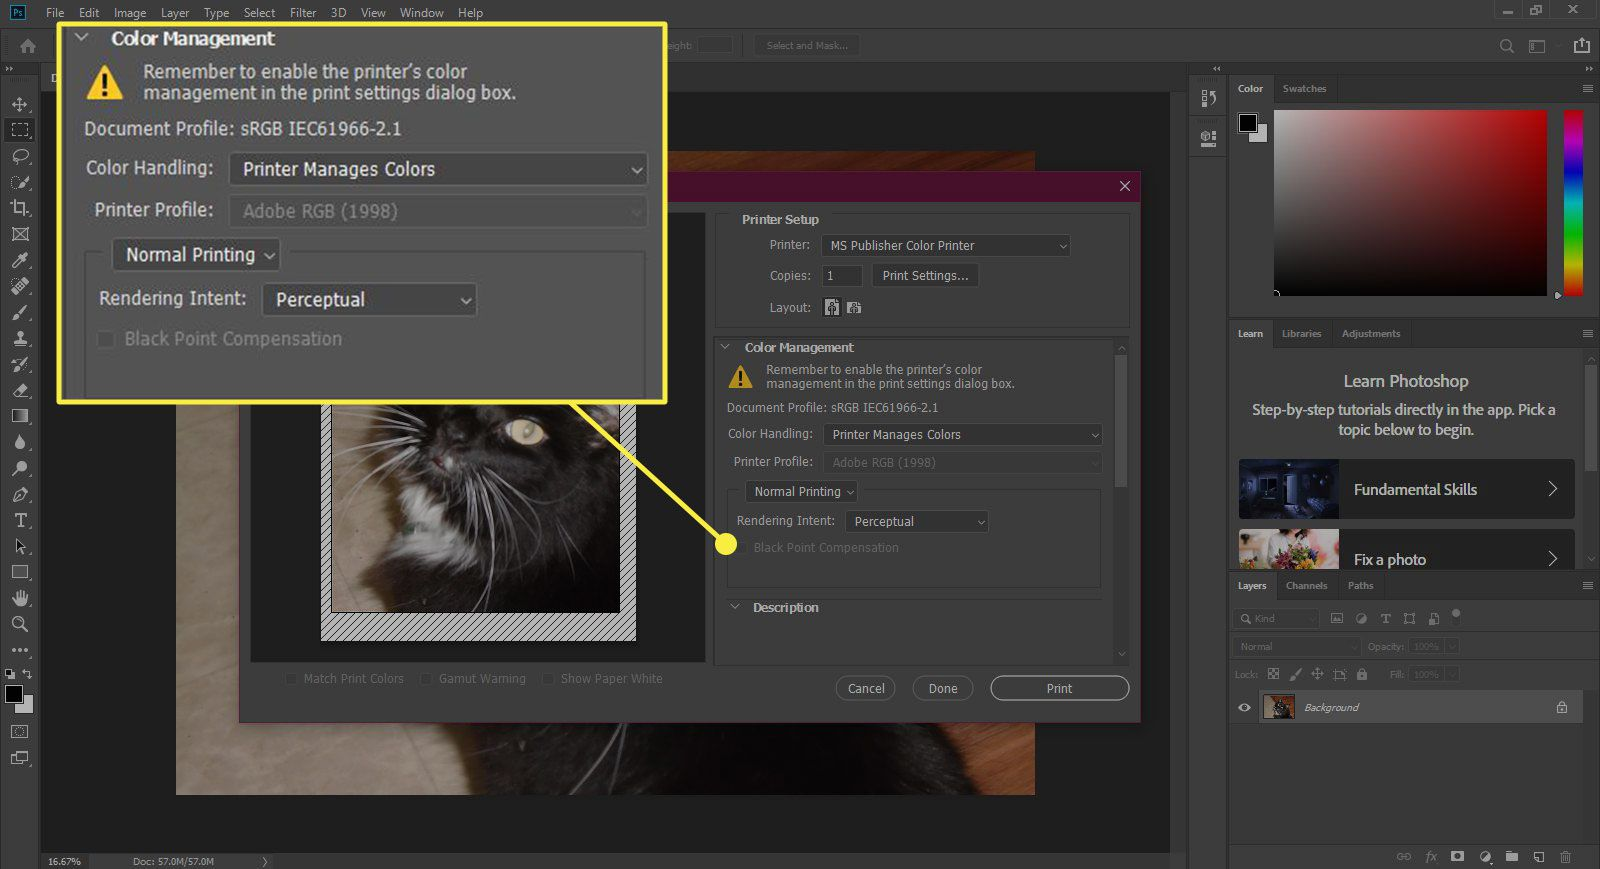 A screenshot of the Print window in Photoshop with the Color Management section highlighted